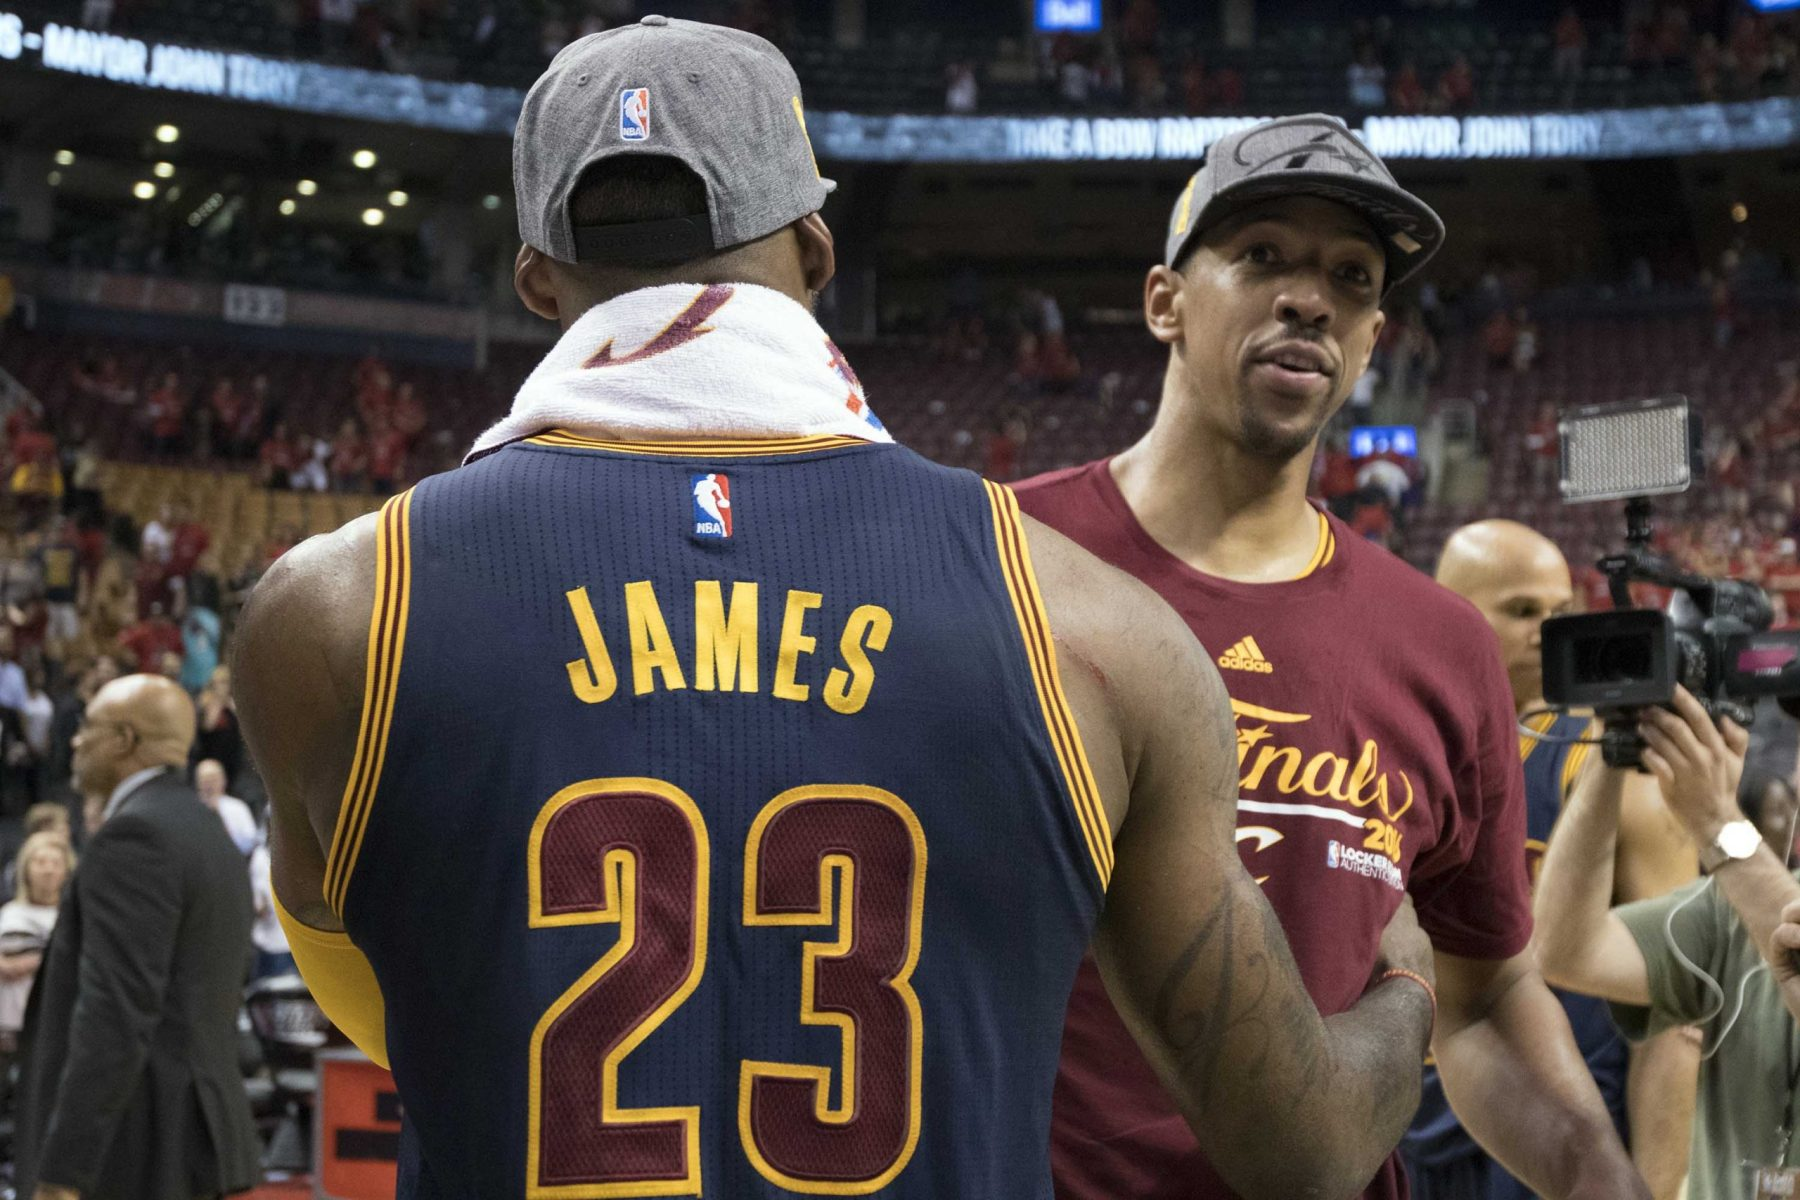 LeBron James and Channing Frye